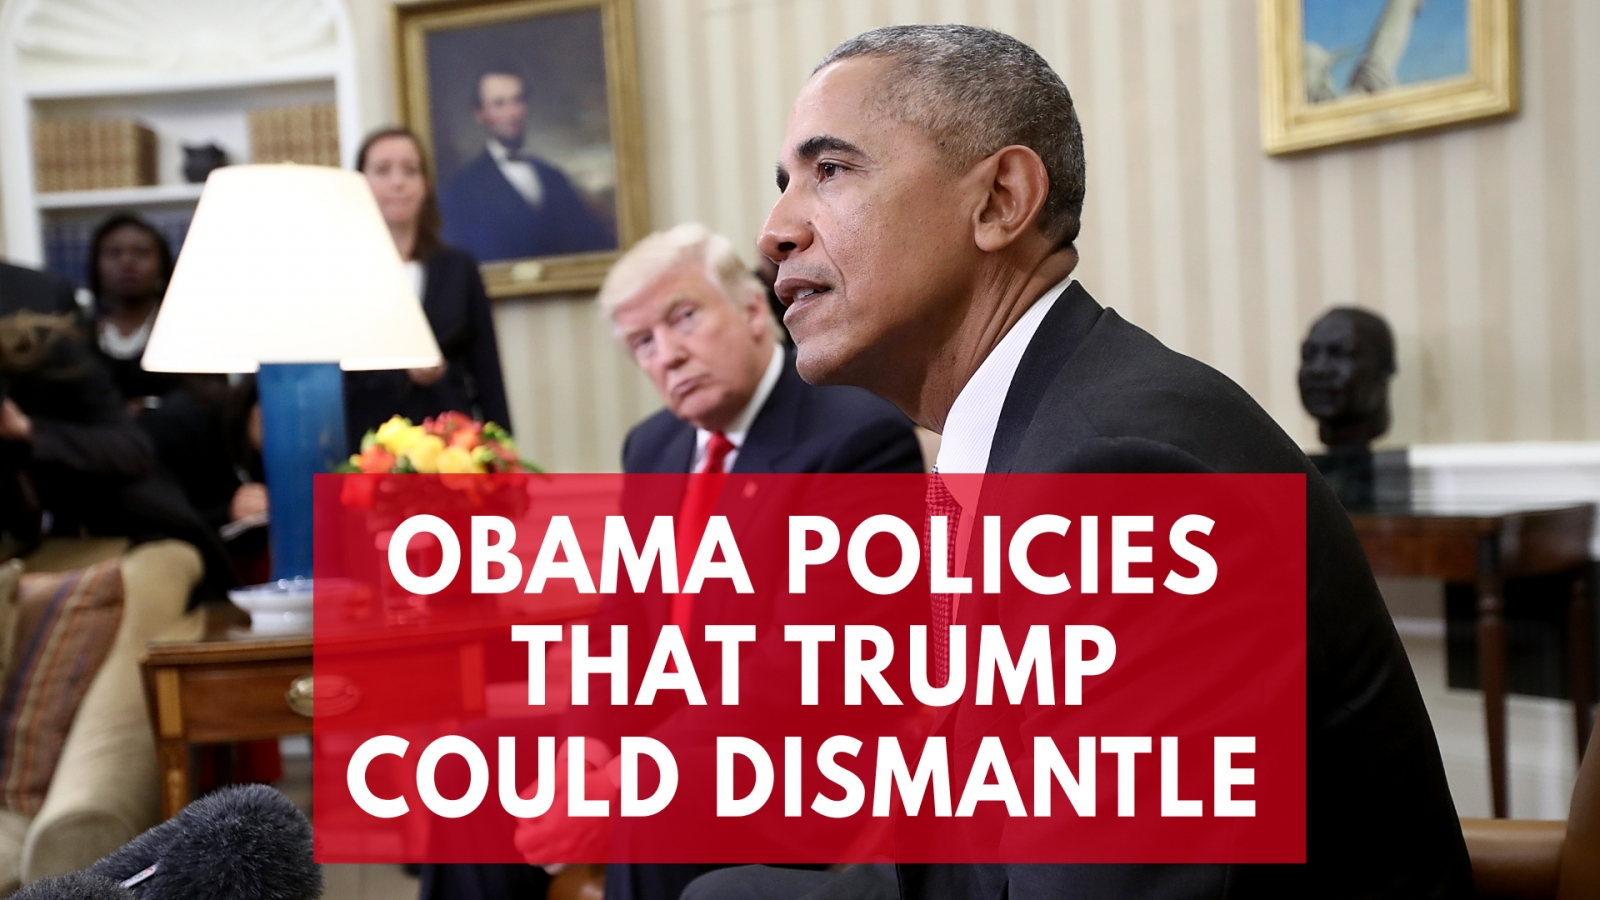 Obama policies that President Trump could dismantle in 2018